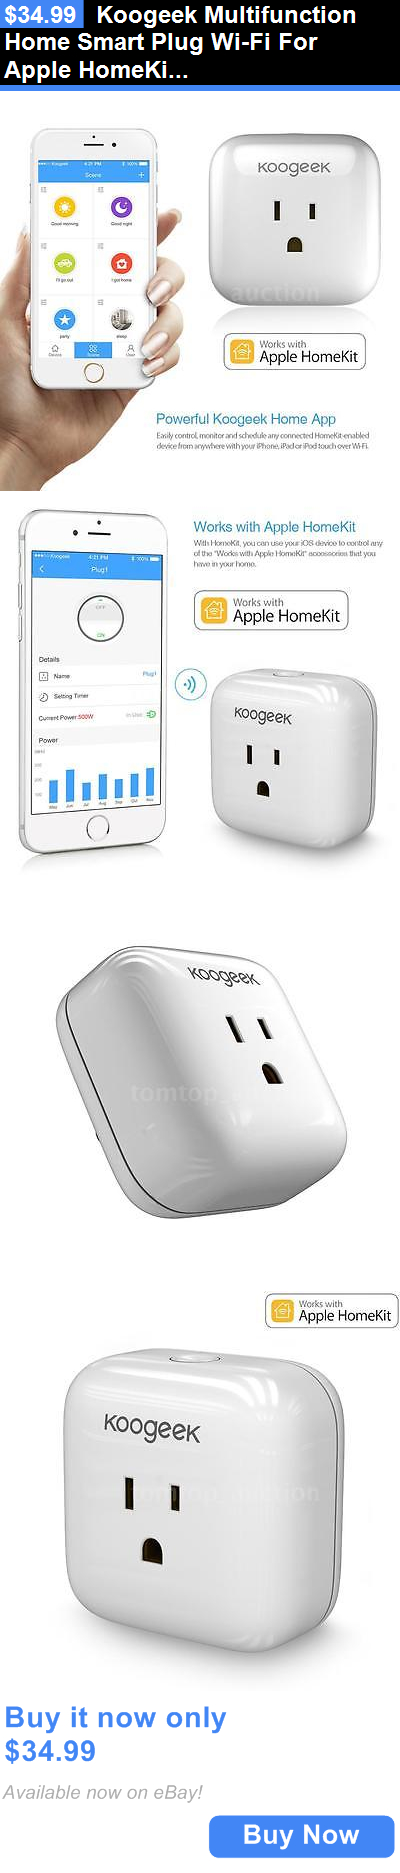 Controls and Touchscreens: Koogeek Multifunction Home Smart Plug Wi-Fi For Apple Homekit Siri Control BUY IT NOW ONLY: $34.99